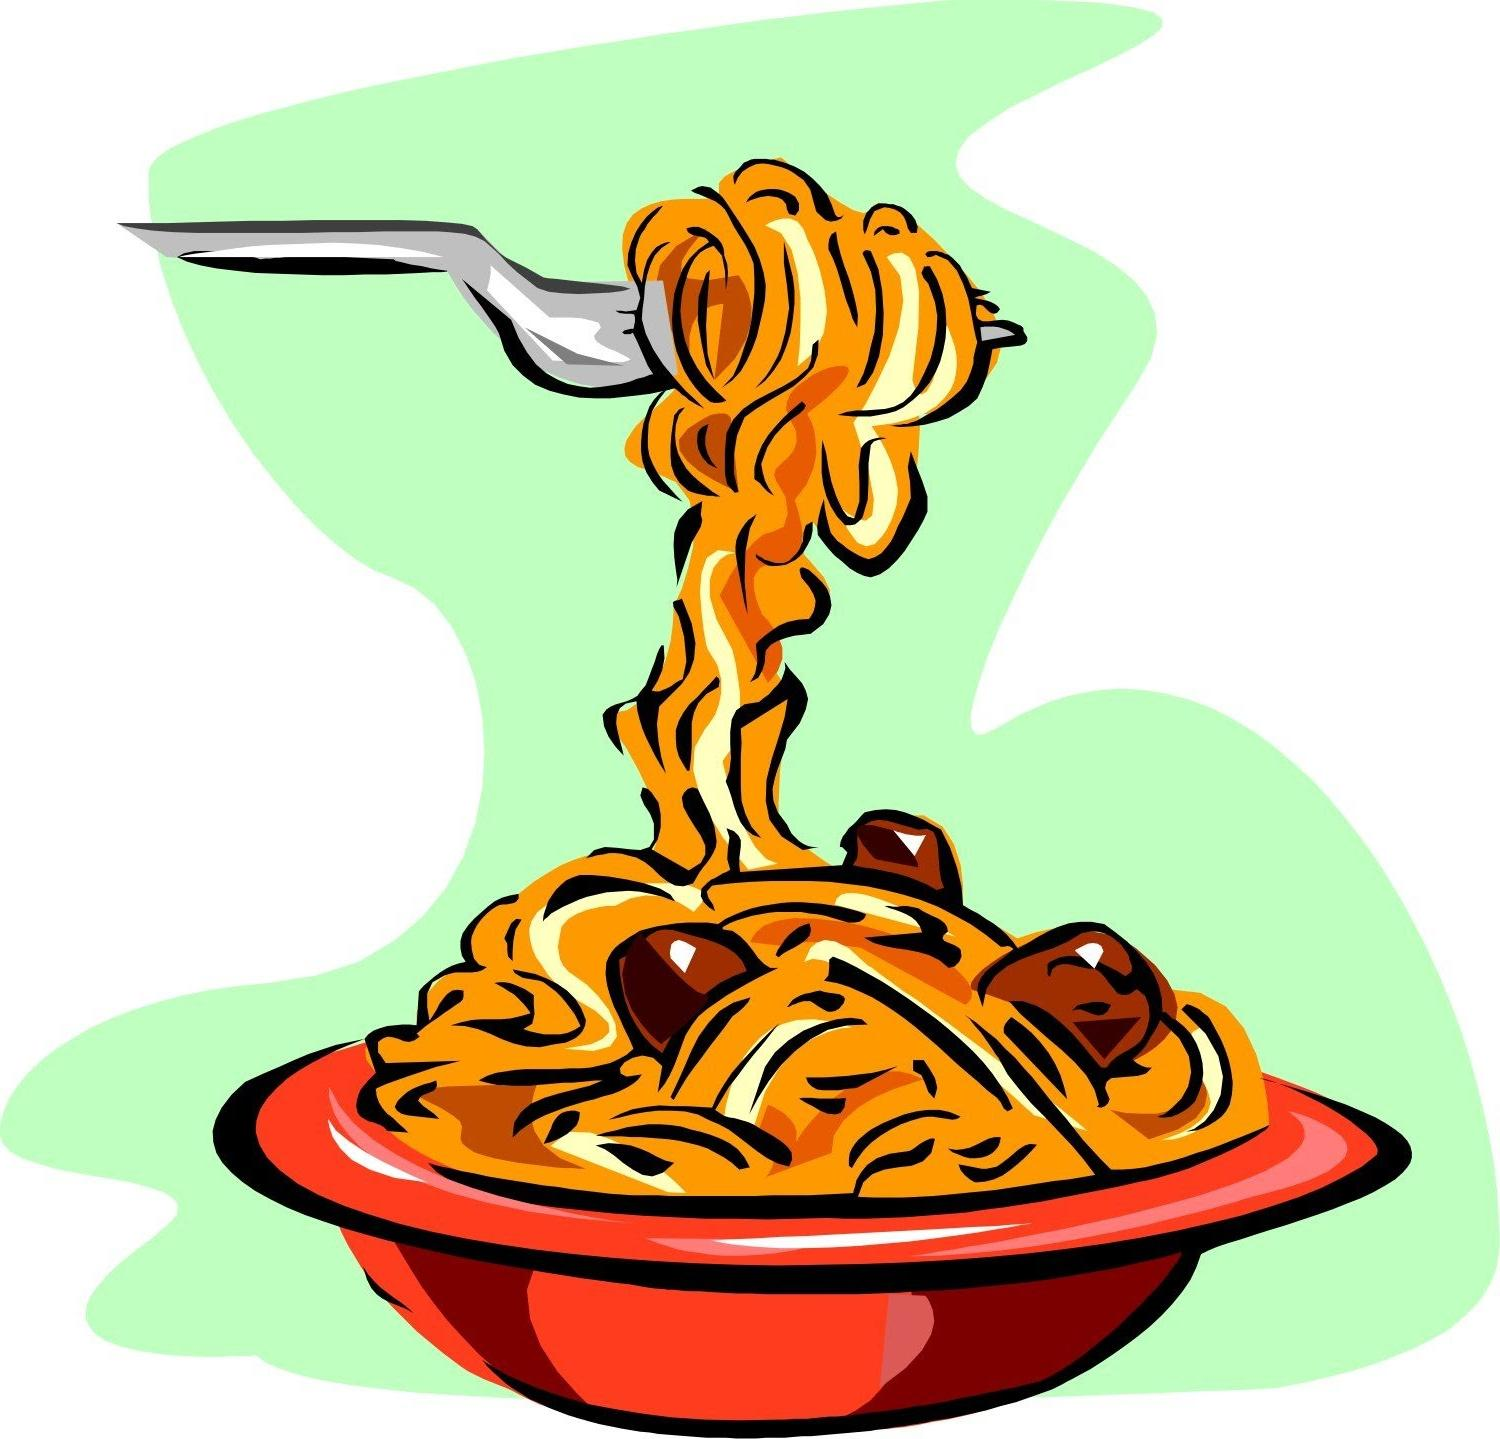 1500x1439 Best Hd Free Spaghetti And Meatballs Clipart Image